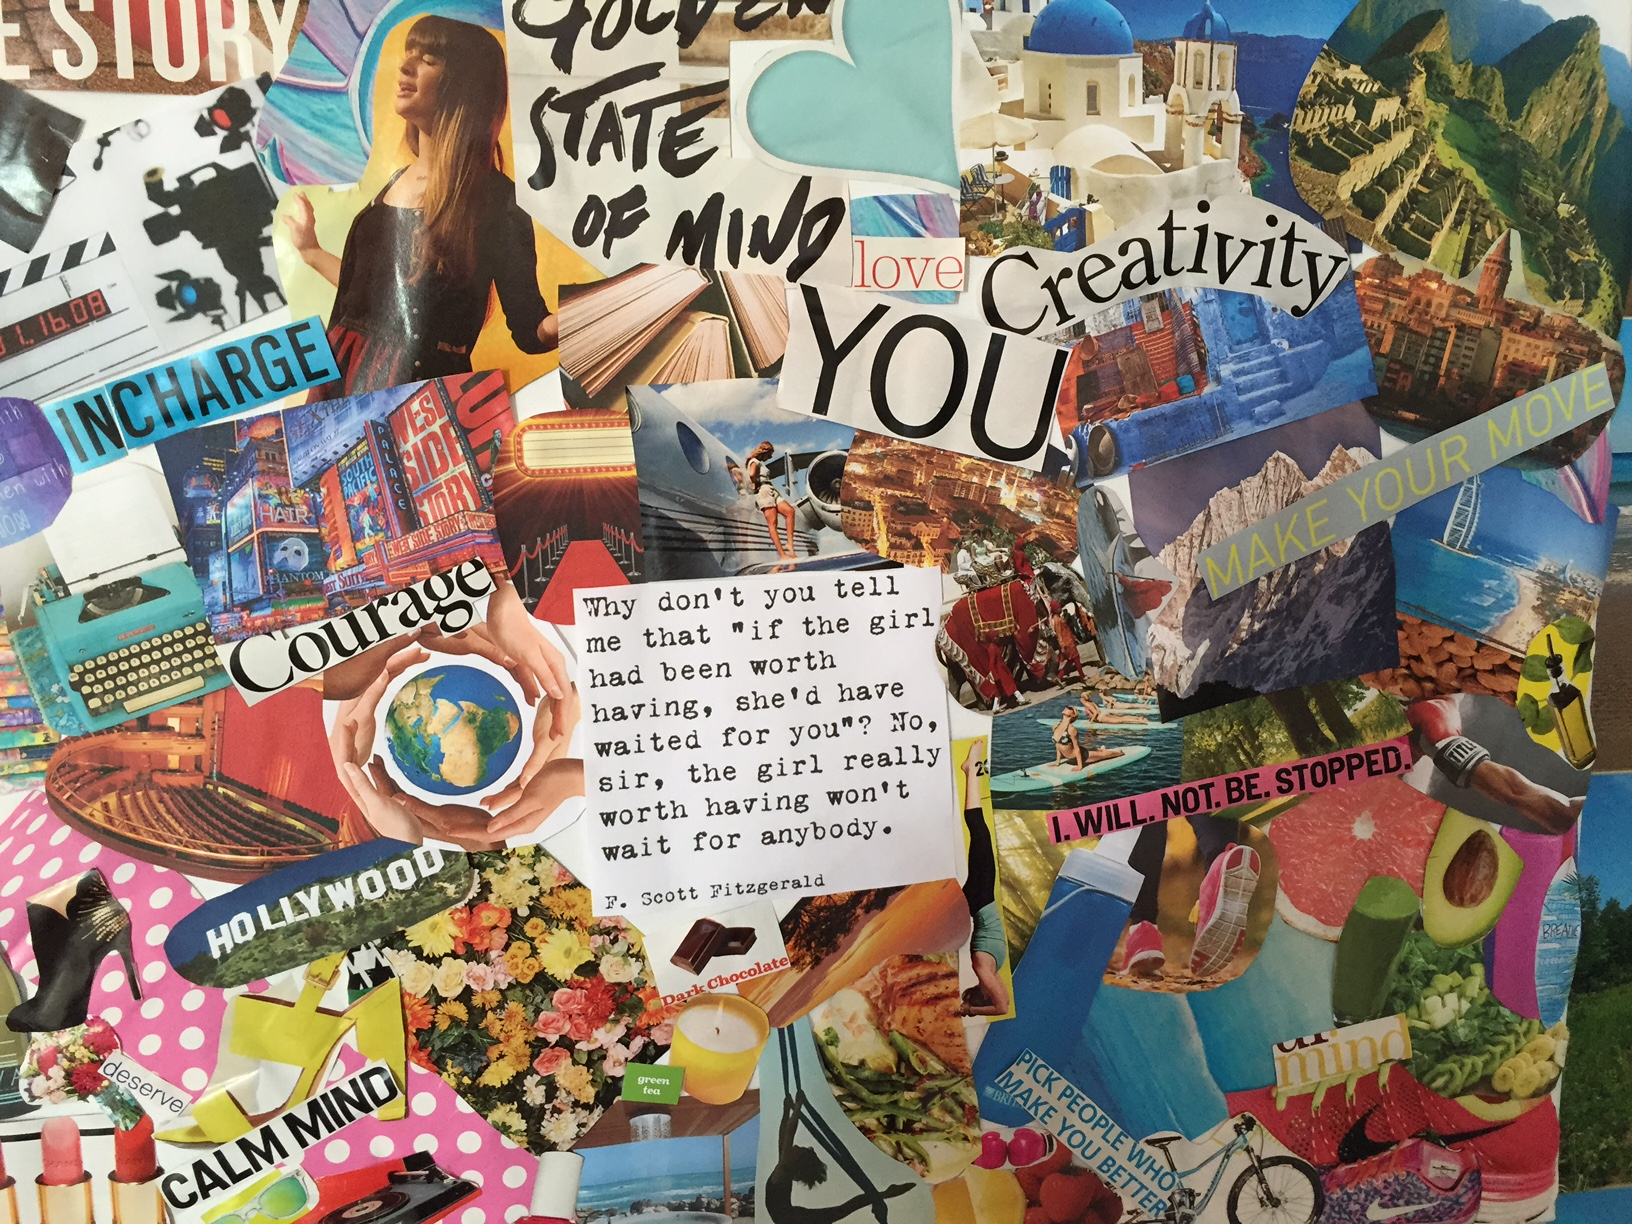 Follow your dreams and stay true to your passions with this awesome DIY craft! Make your own vision board!